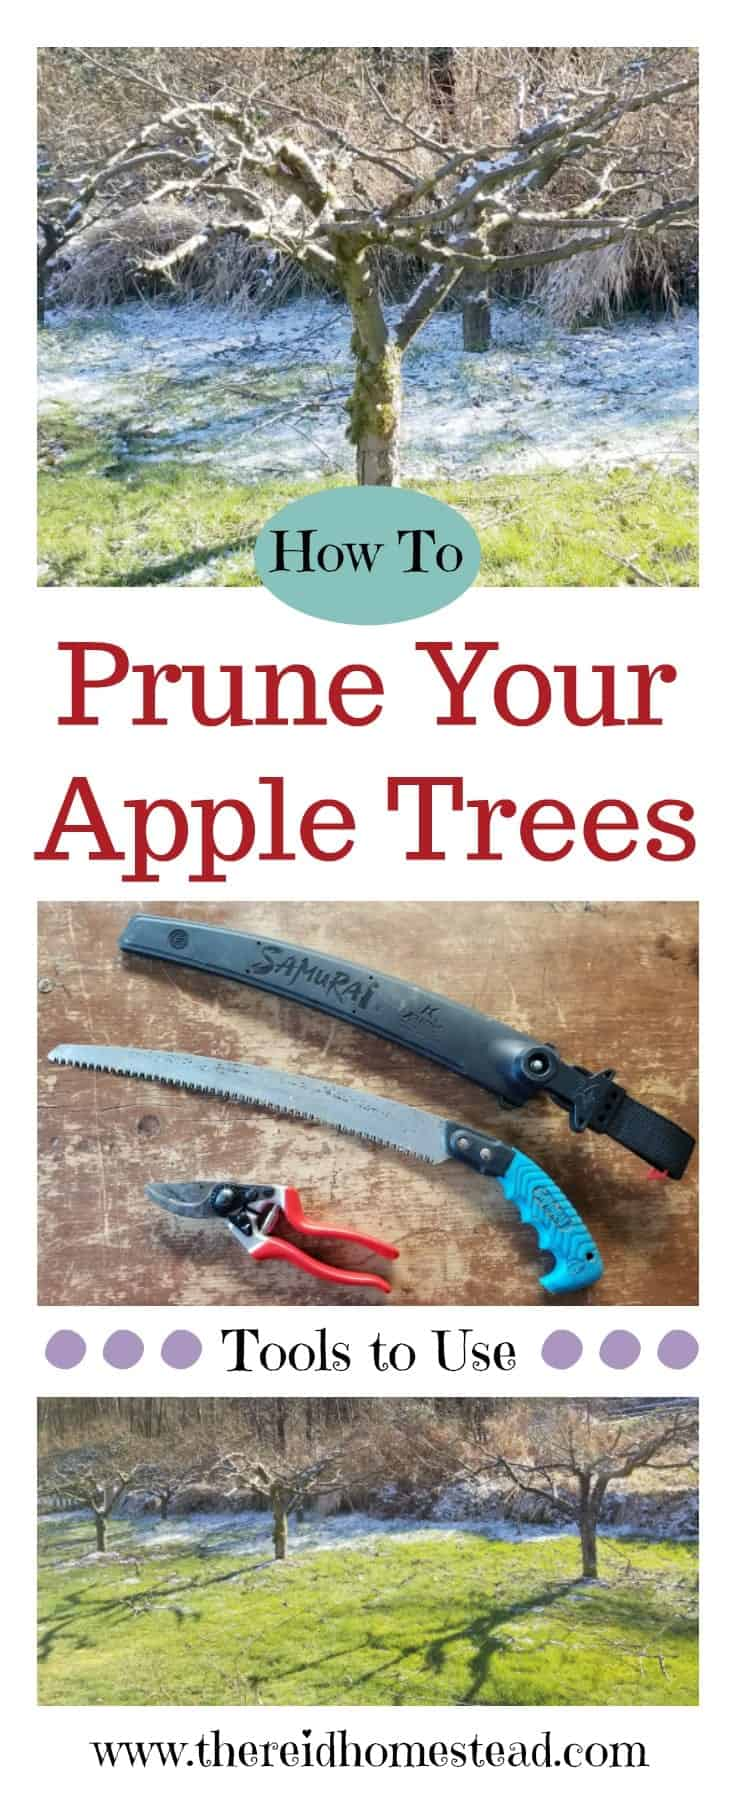 My tips on how to prune apple trees on your homestead. A guide and tutorial to show you the best tools to use. The Reid Homestead